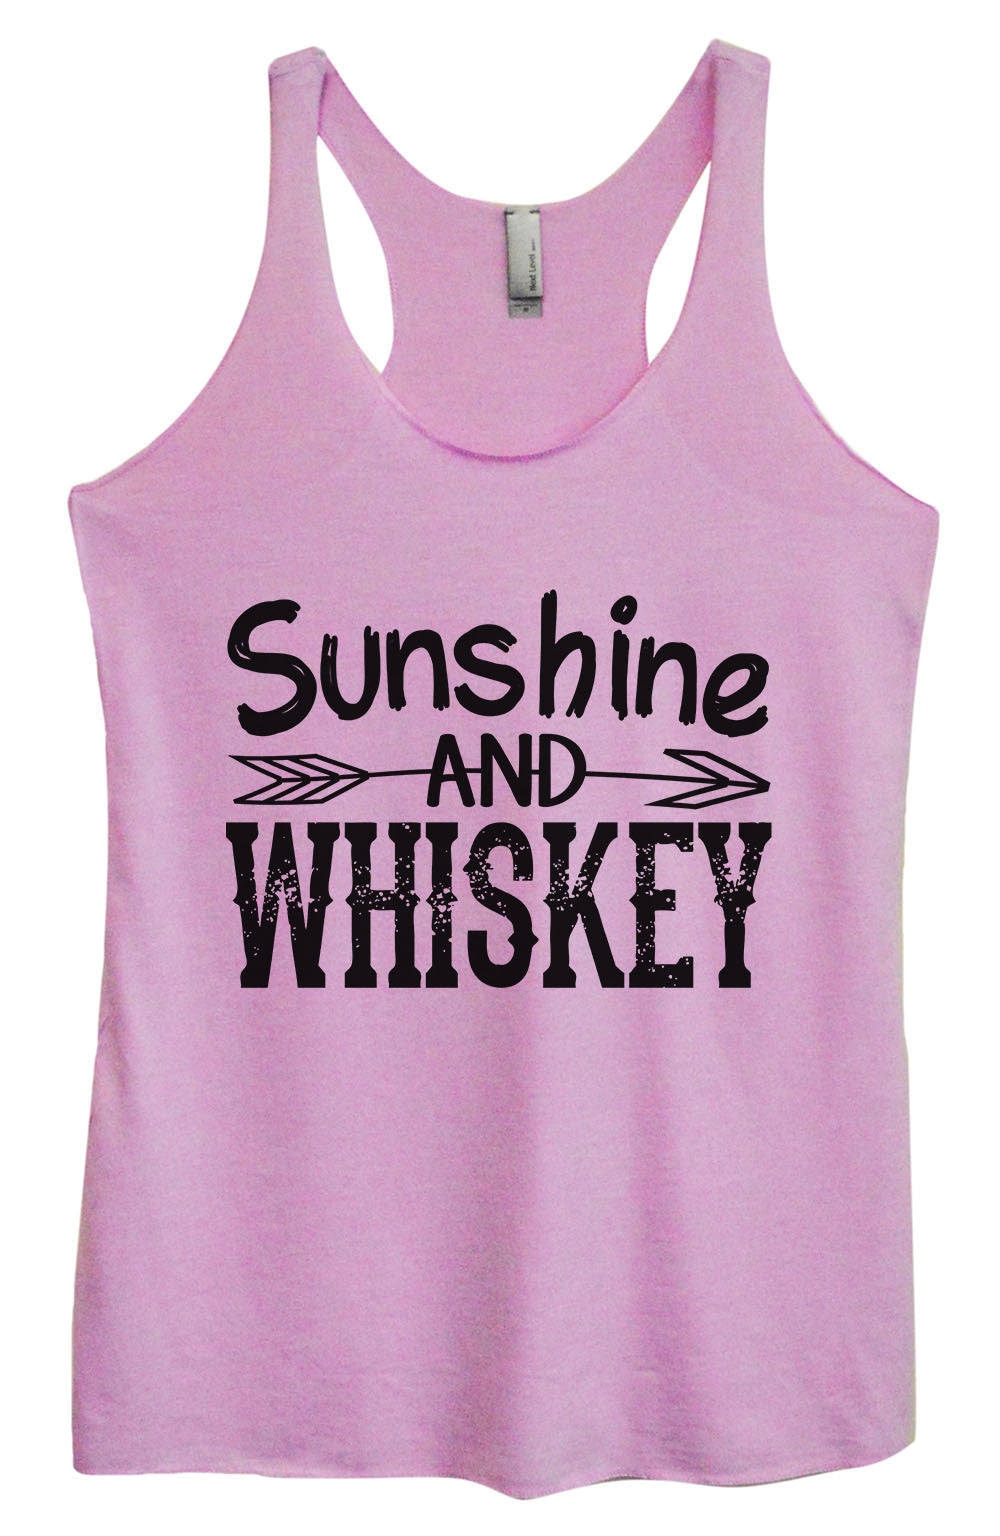 Womens Fashion Triblend Tank Top - Sunshine And Whiskey - Tri-1406 - Funny Shirts Tank Tops Burnouts and Triblends  - 1